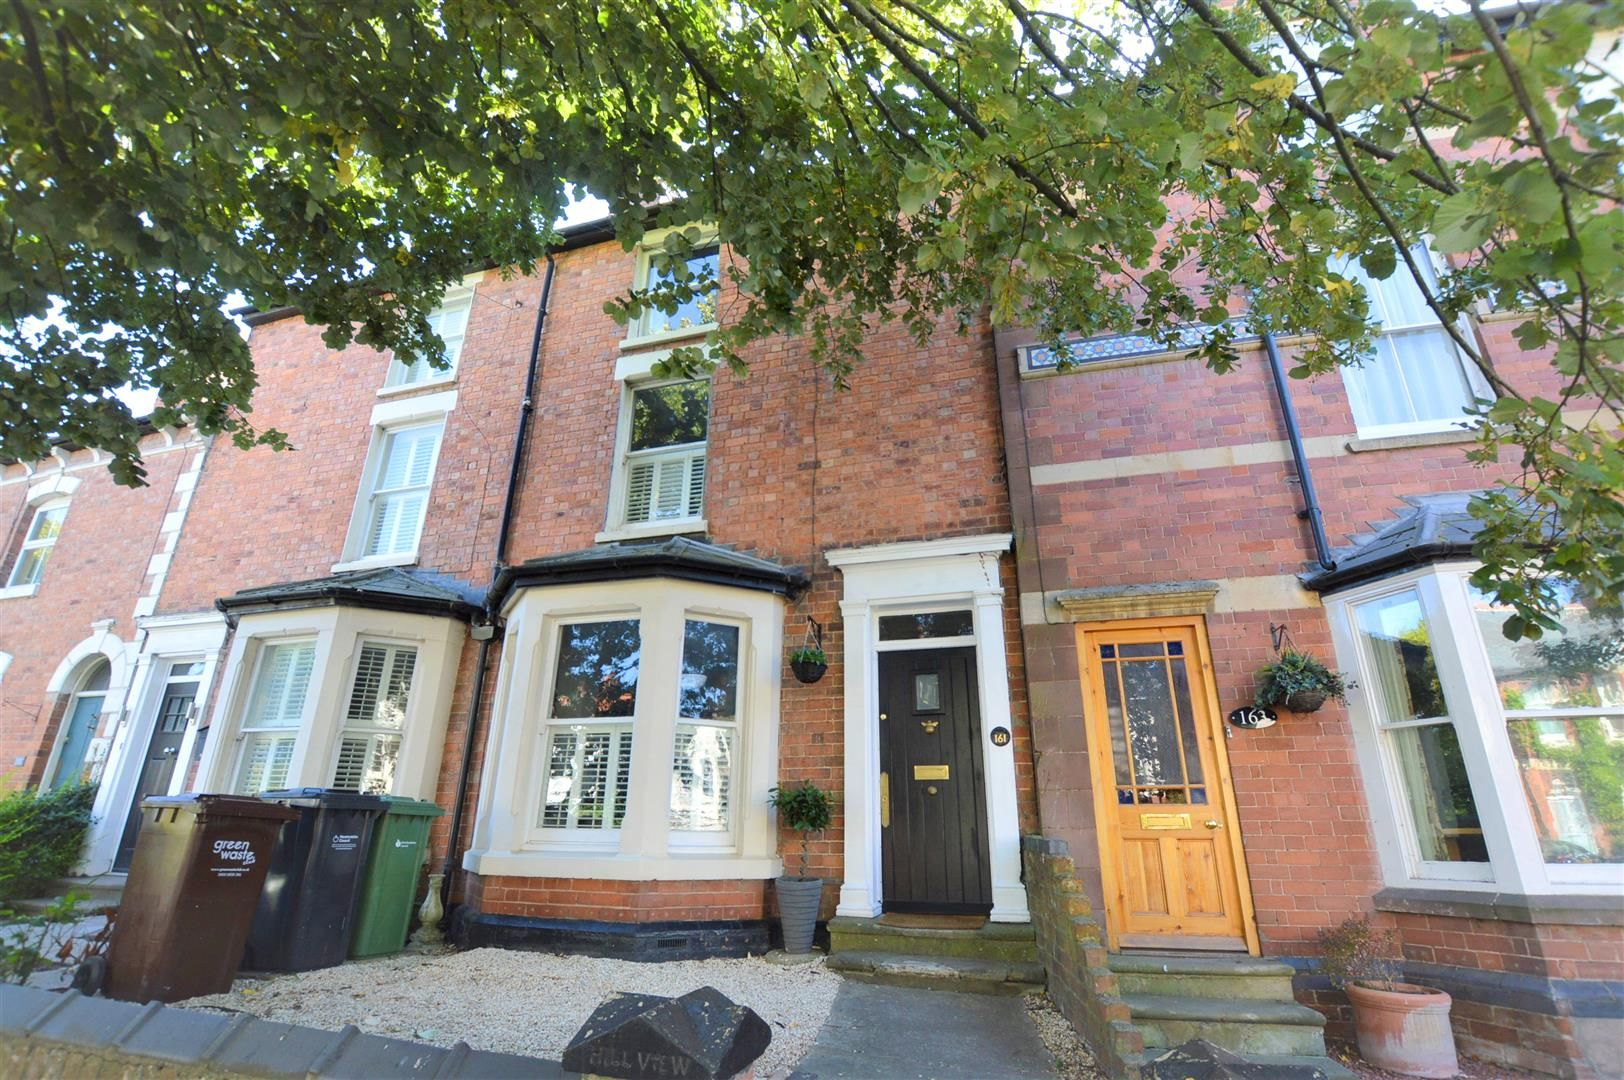 3 bed terraced for sale in Leominster, HR6